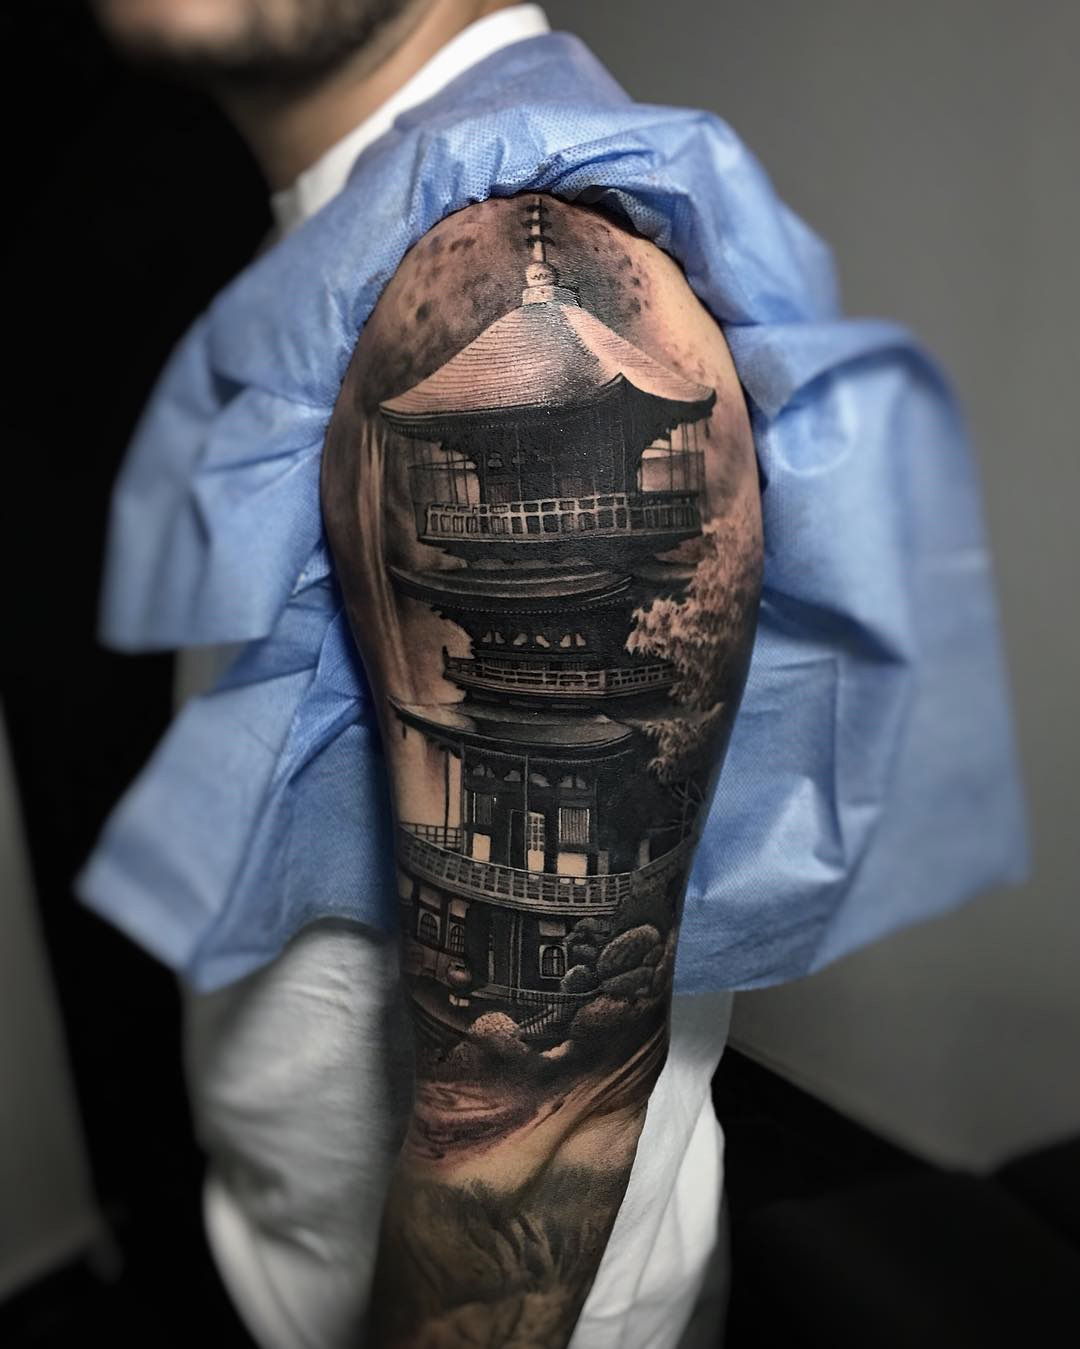 Tattoo ideas 2016 get new tattoos for 2016 2017 designs and ideas - Realism Pagoda Mens Asian Sleeve Best Tattoo Design Ideas